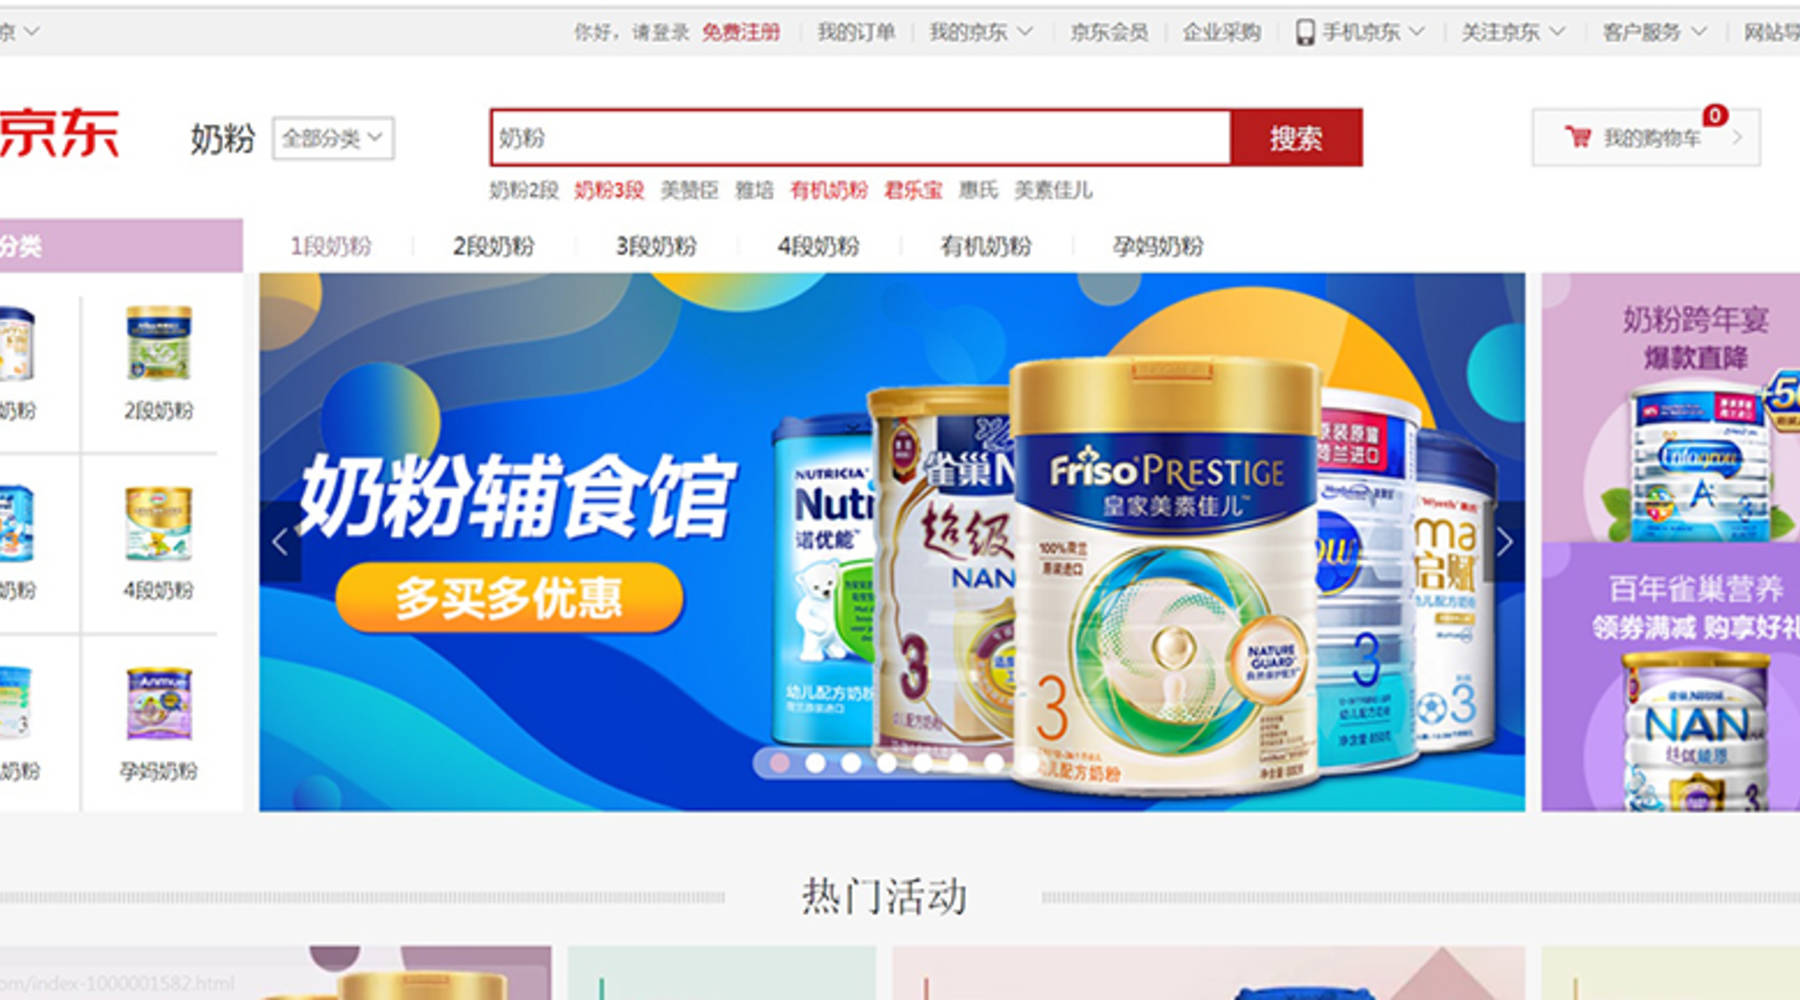 Foreign infant milk formula still highly coveted in China 10 years